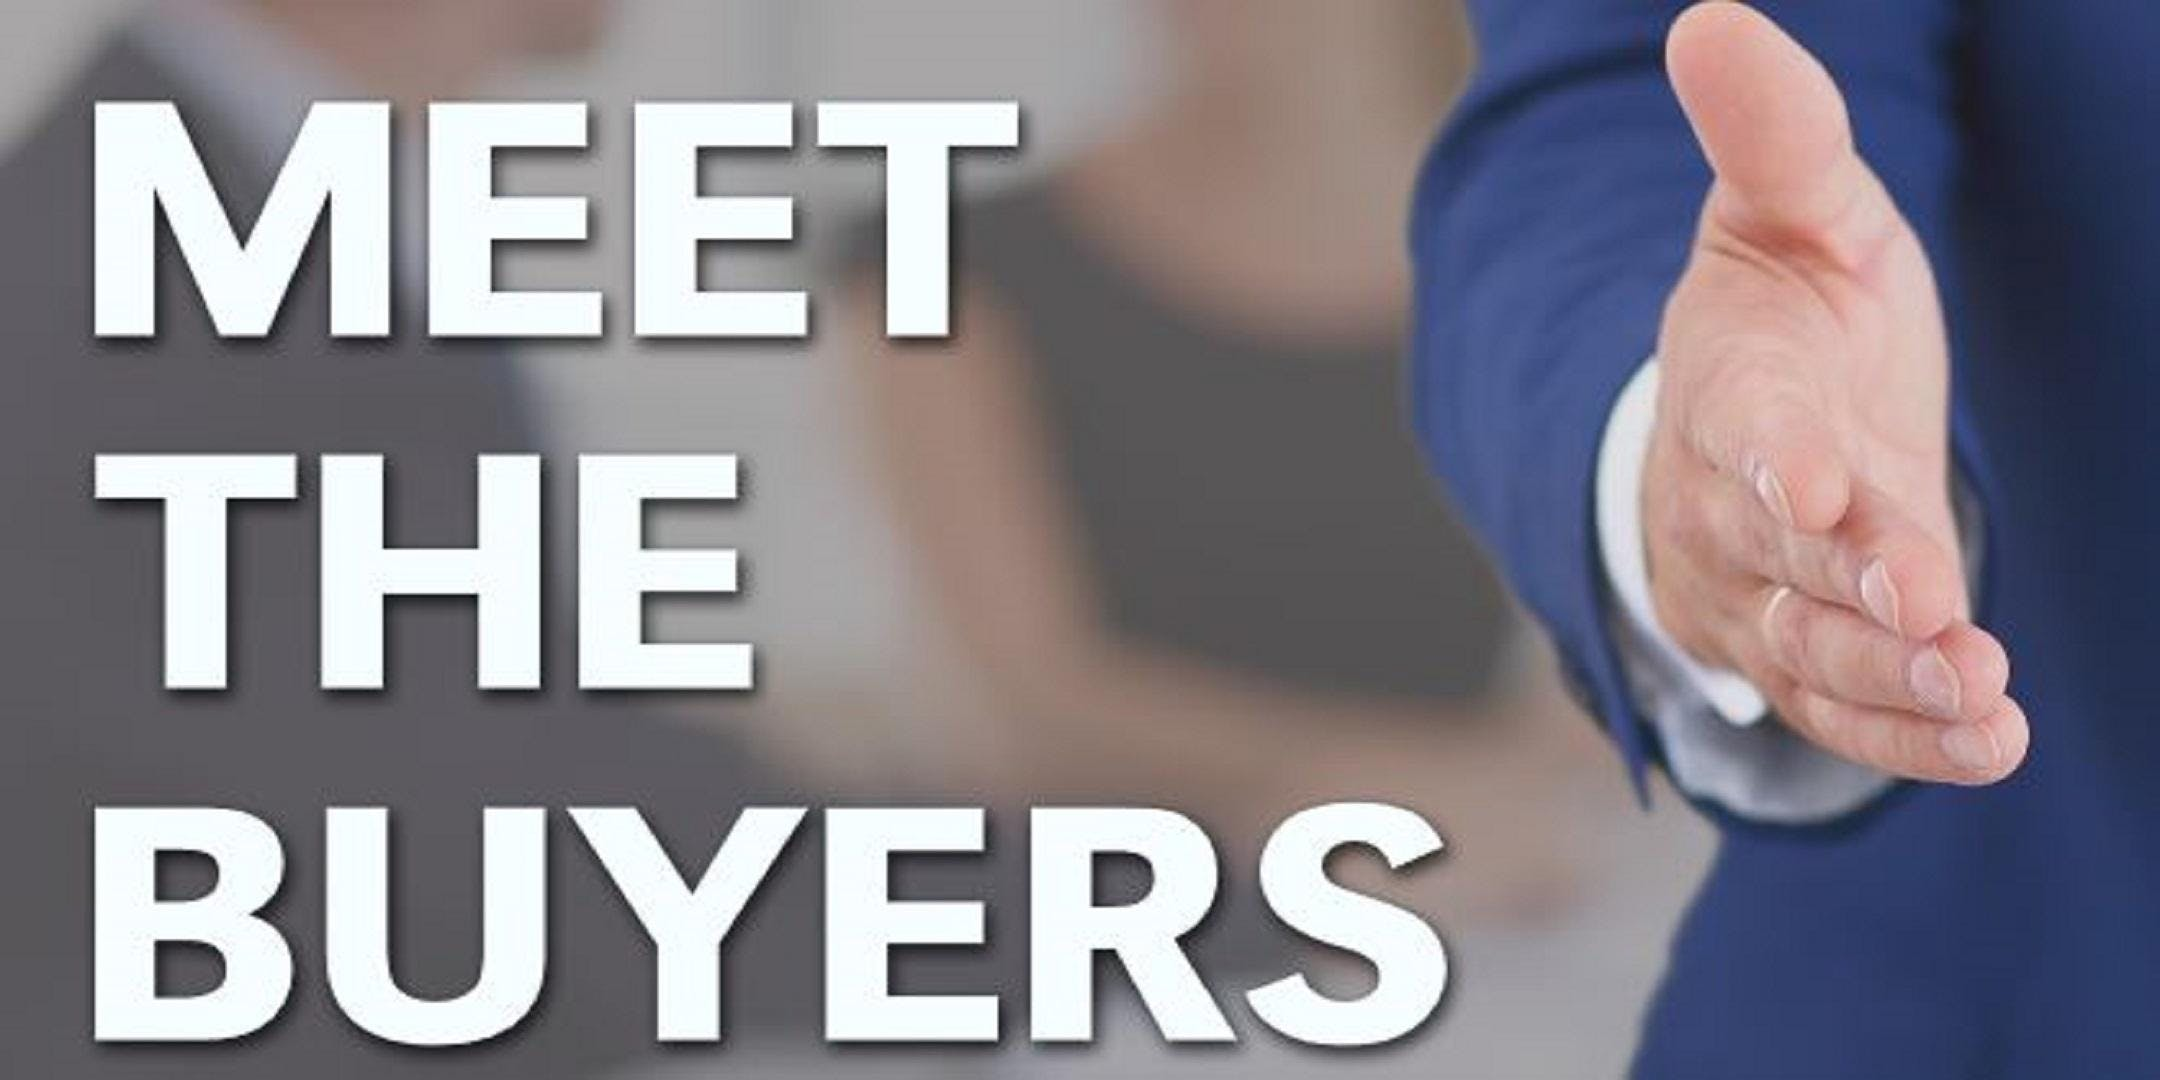 Meet the Buyers 2019 Goverment Contracting Co